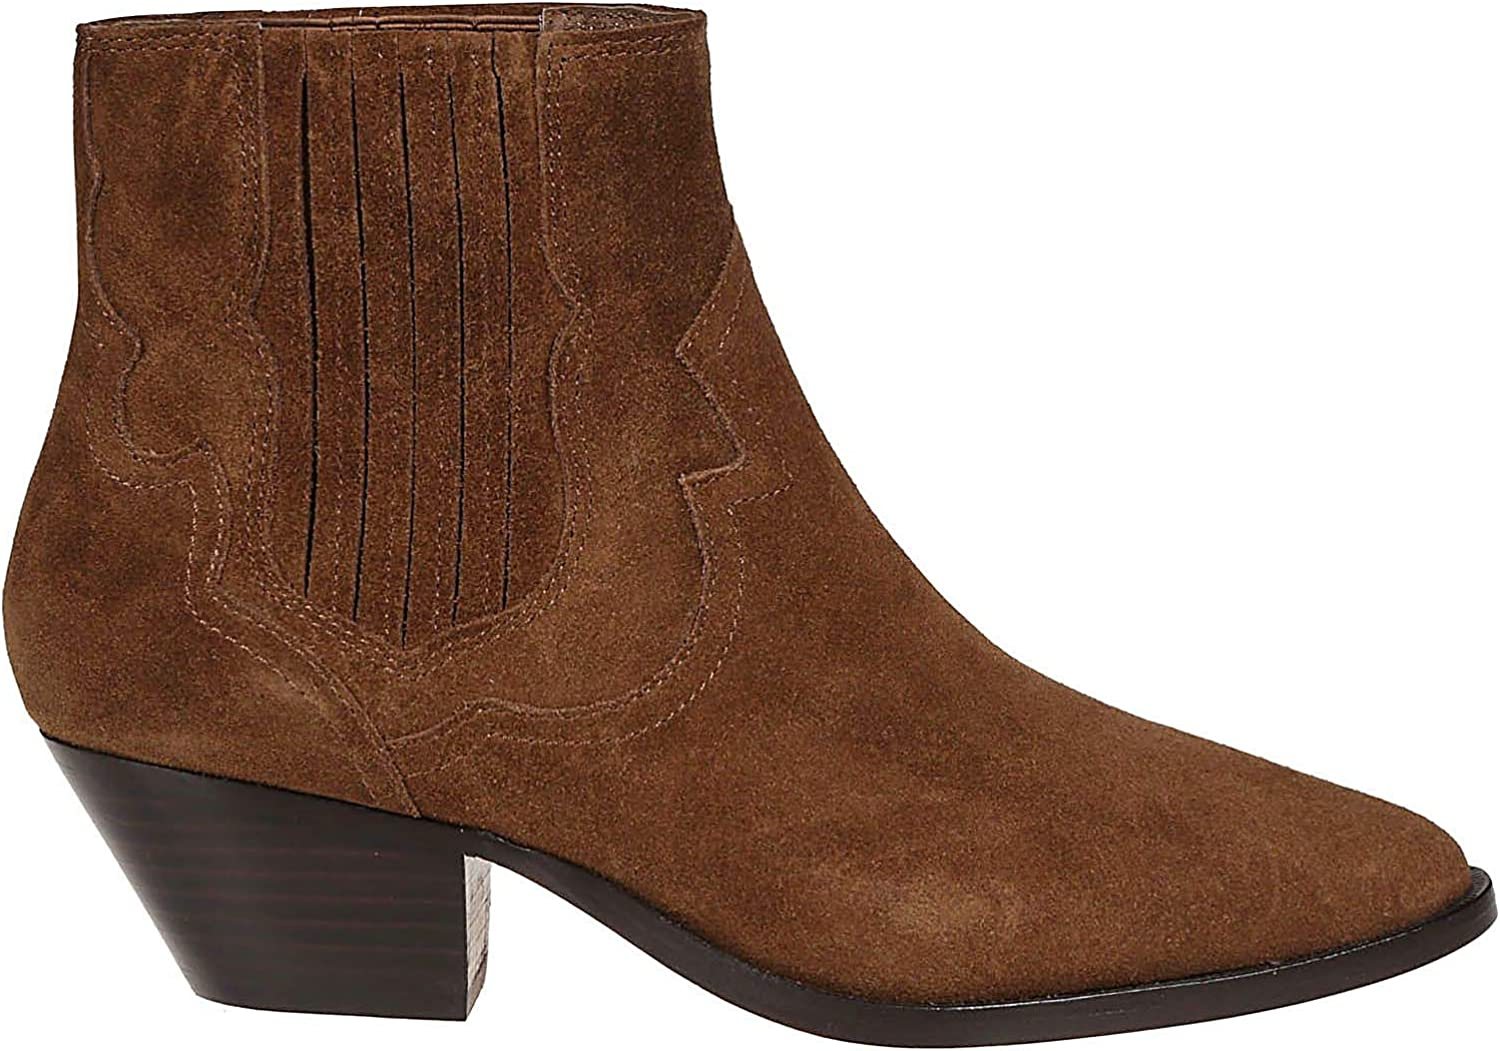 Ash Women's FALCON01 Brown Suede Ankle Boots